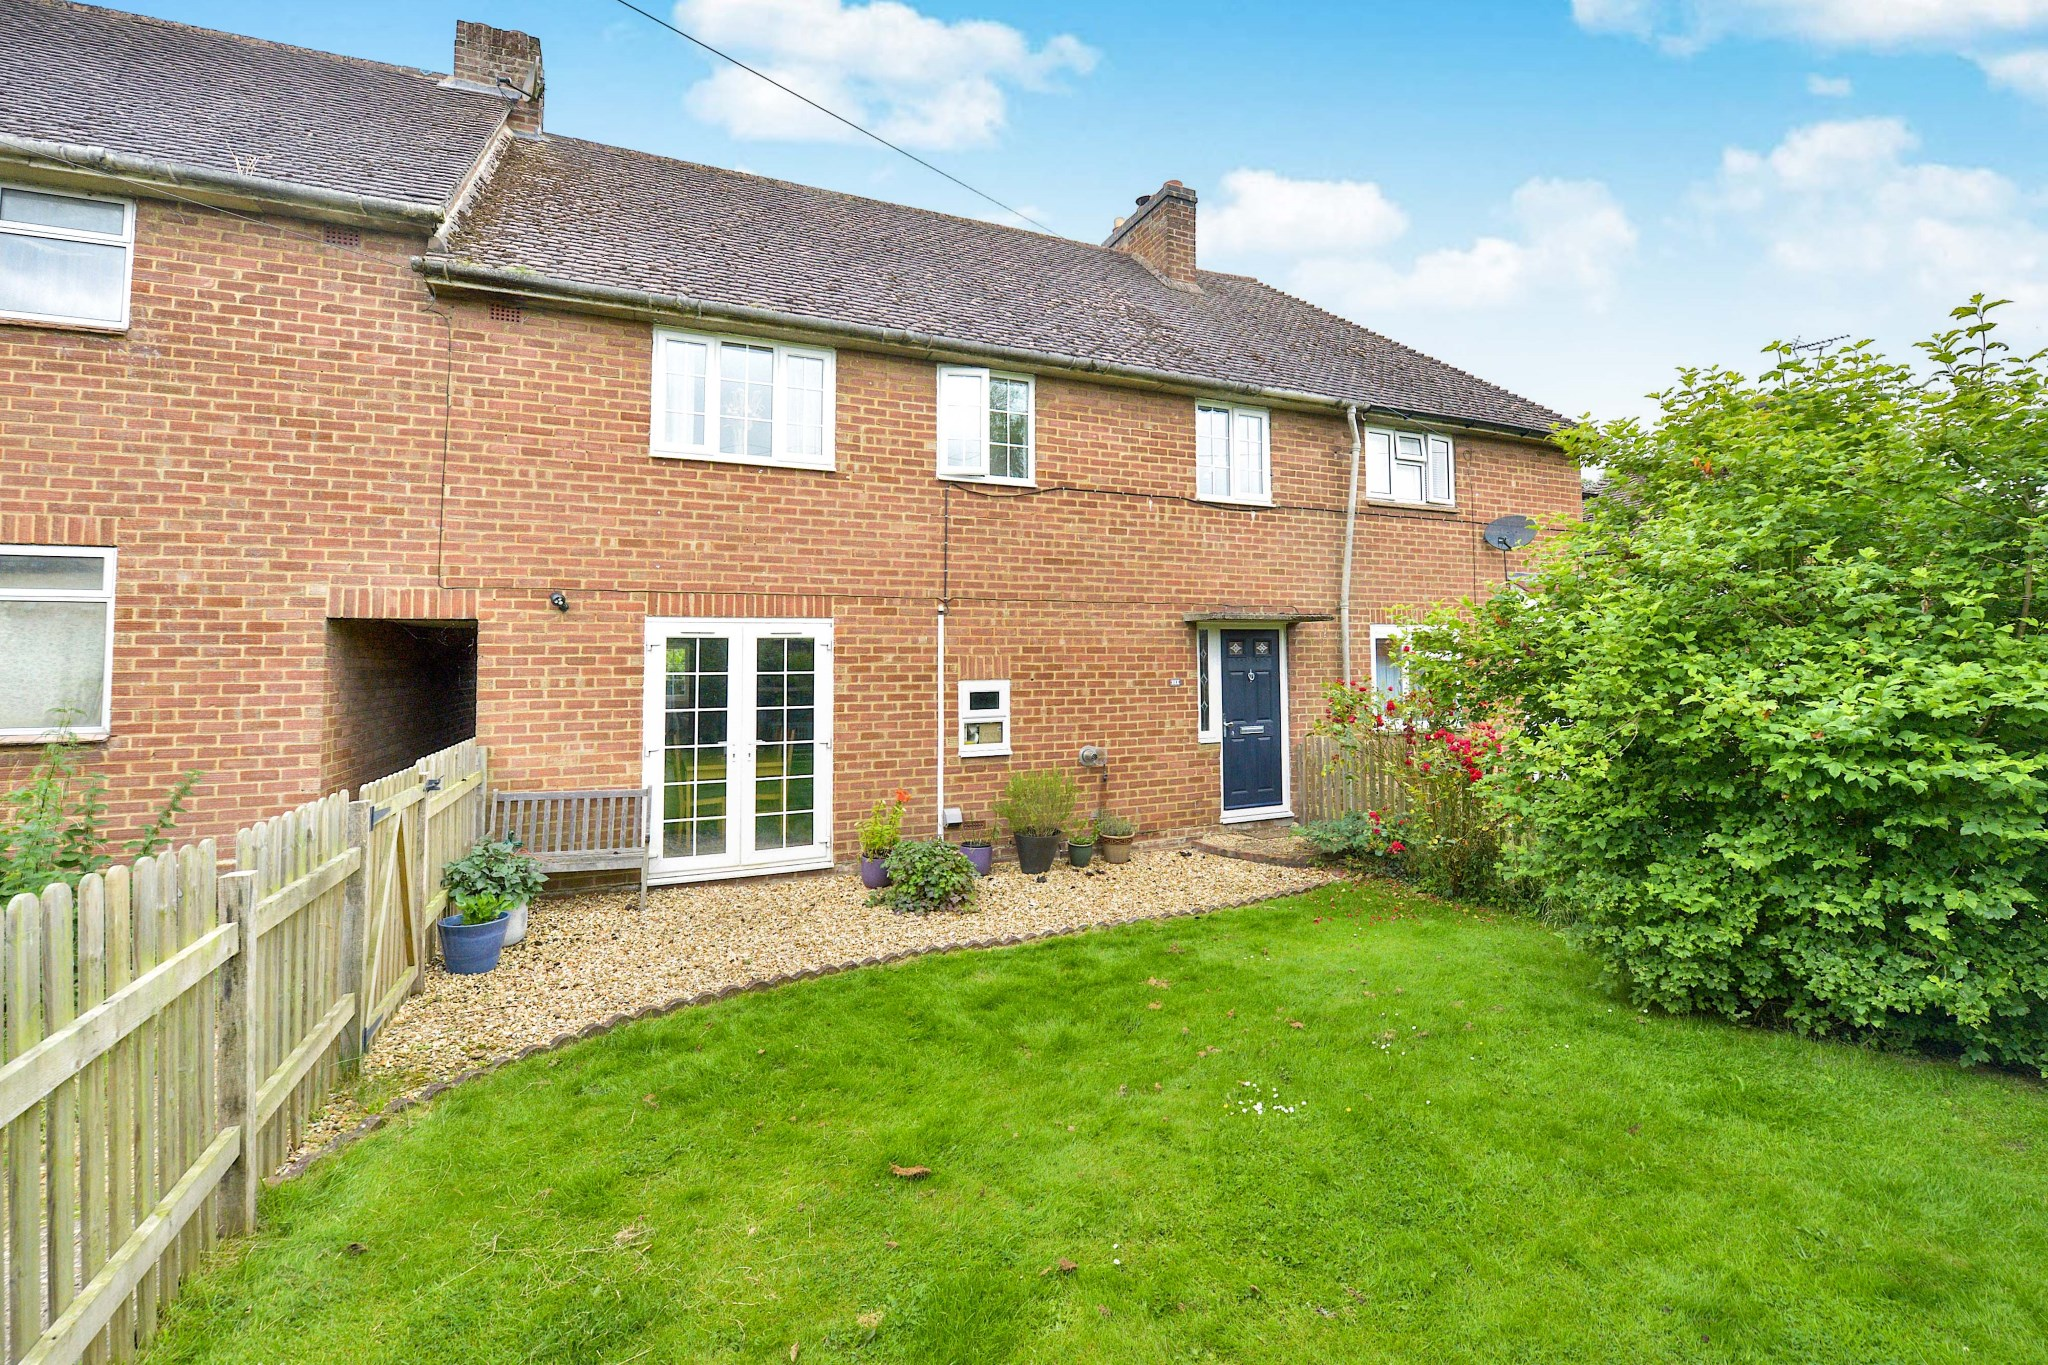 Newport Pagnell, 3 bedrooms